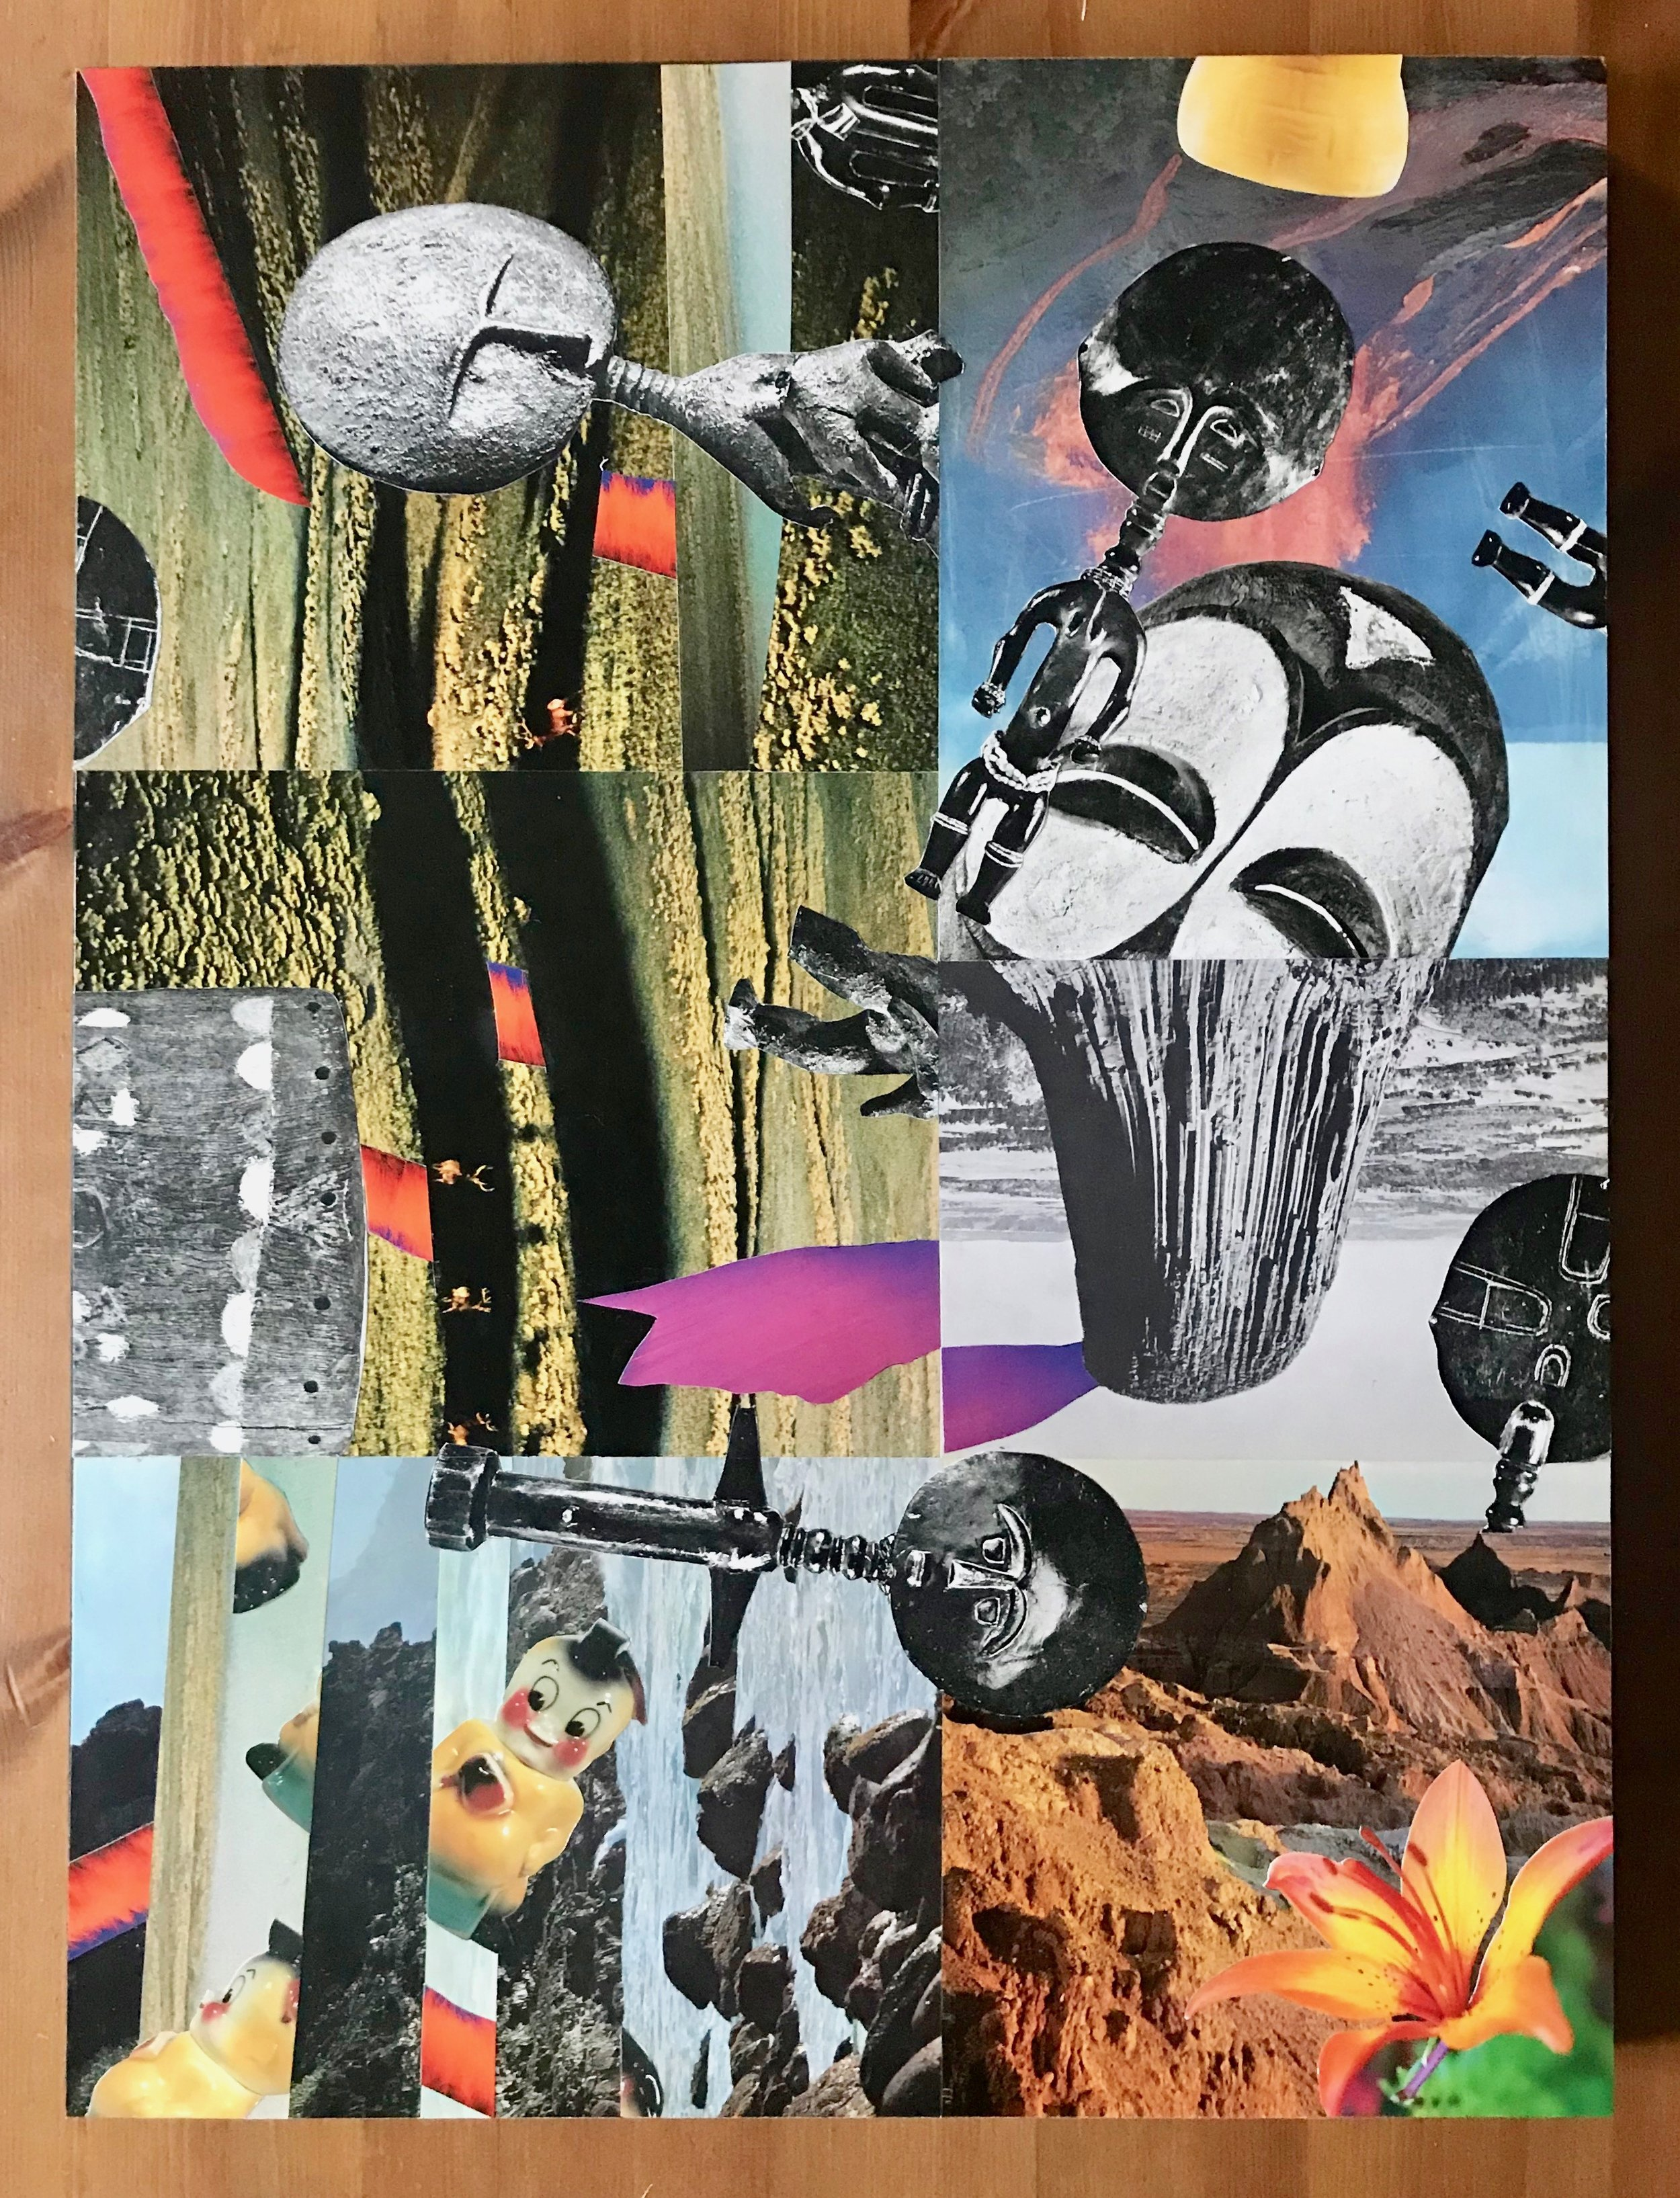 "Collage (Drift) 18"" x 14"" (on wood) 2018"